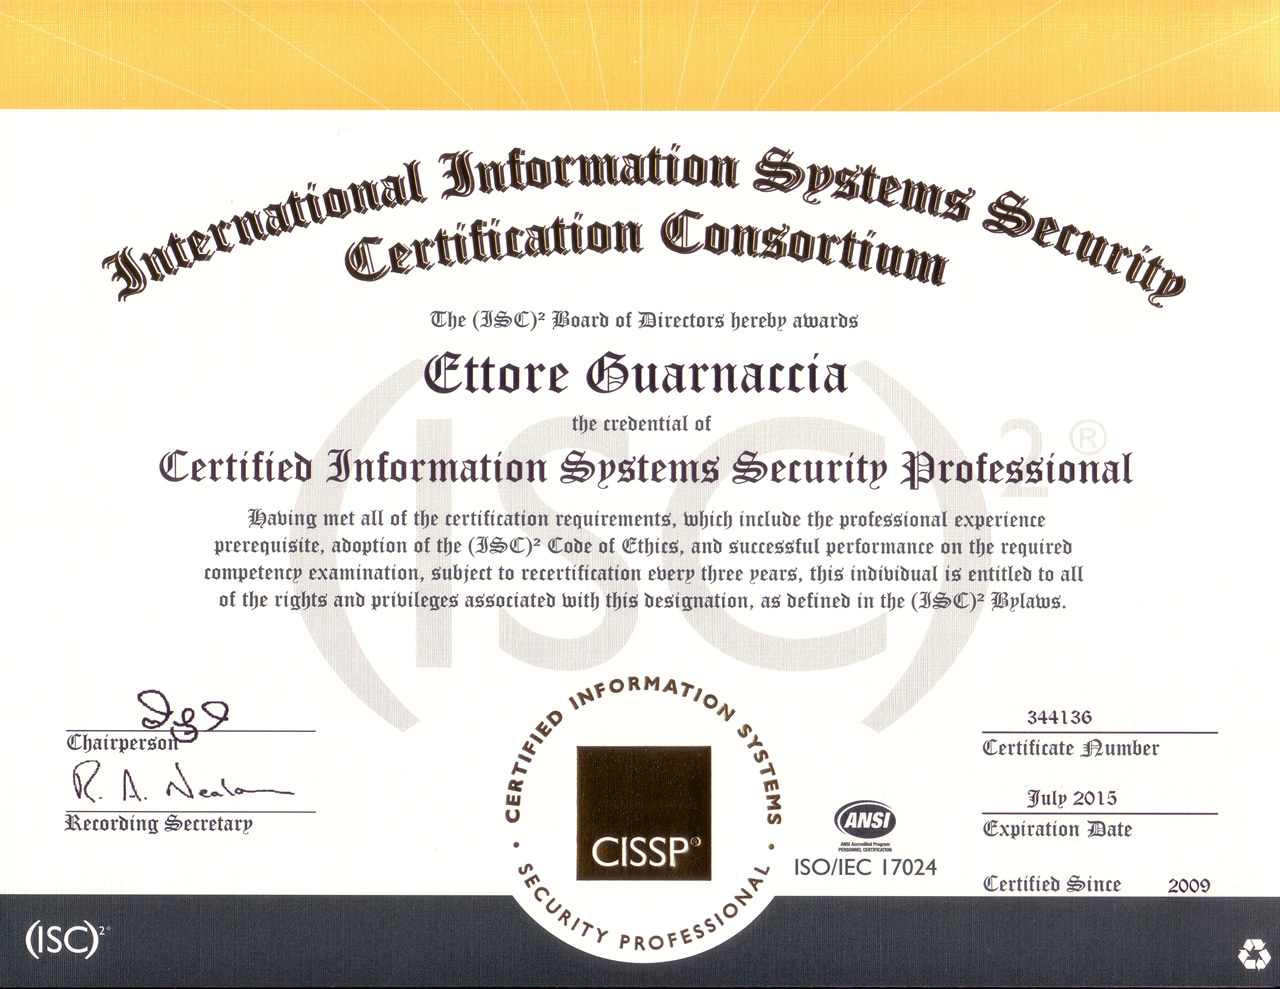 cissp security certificato sauer certified systems professional patrick